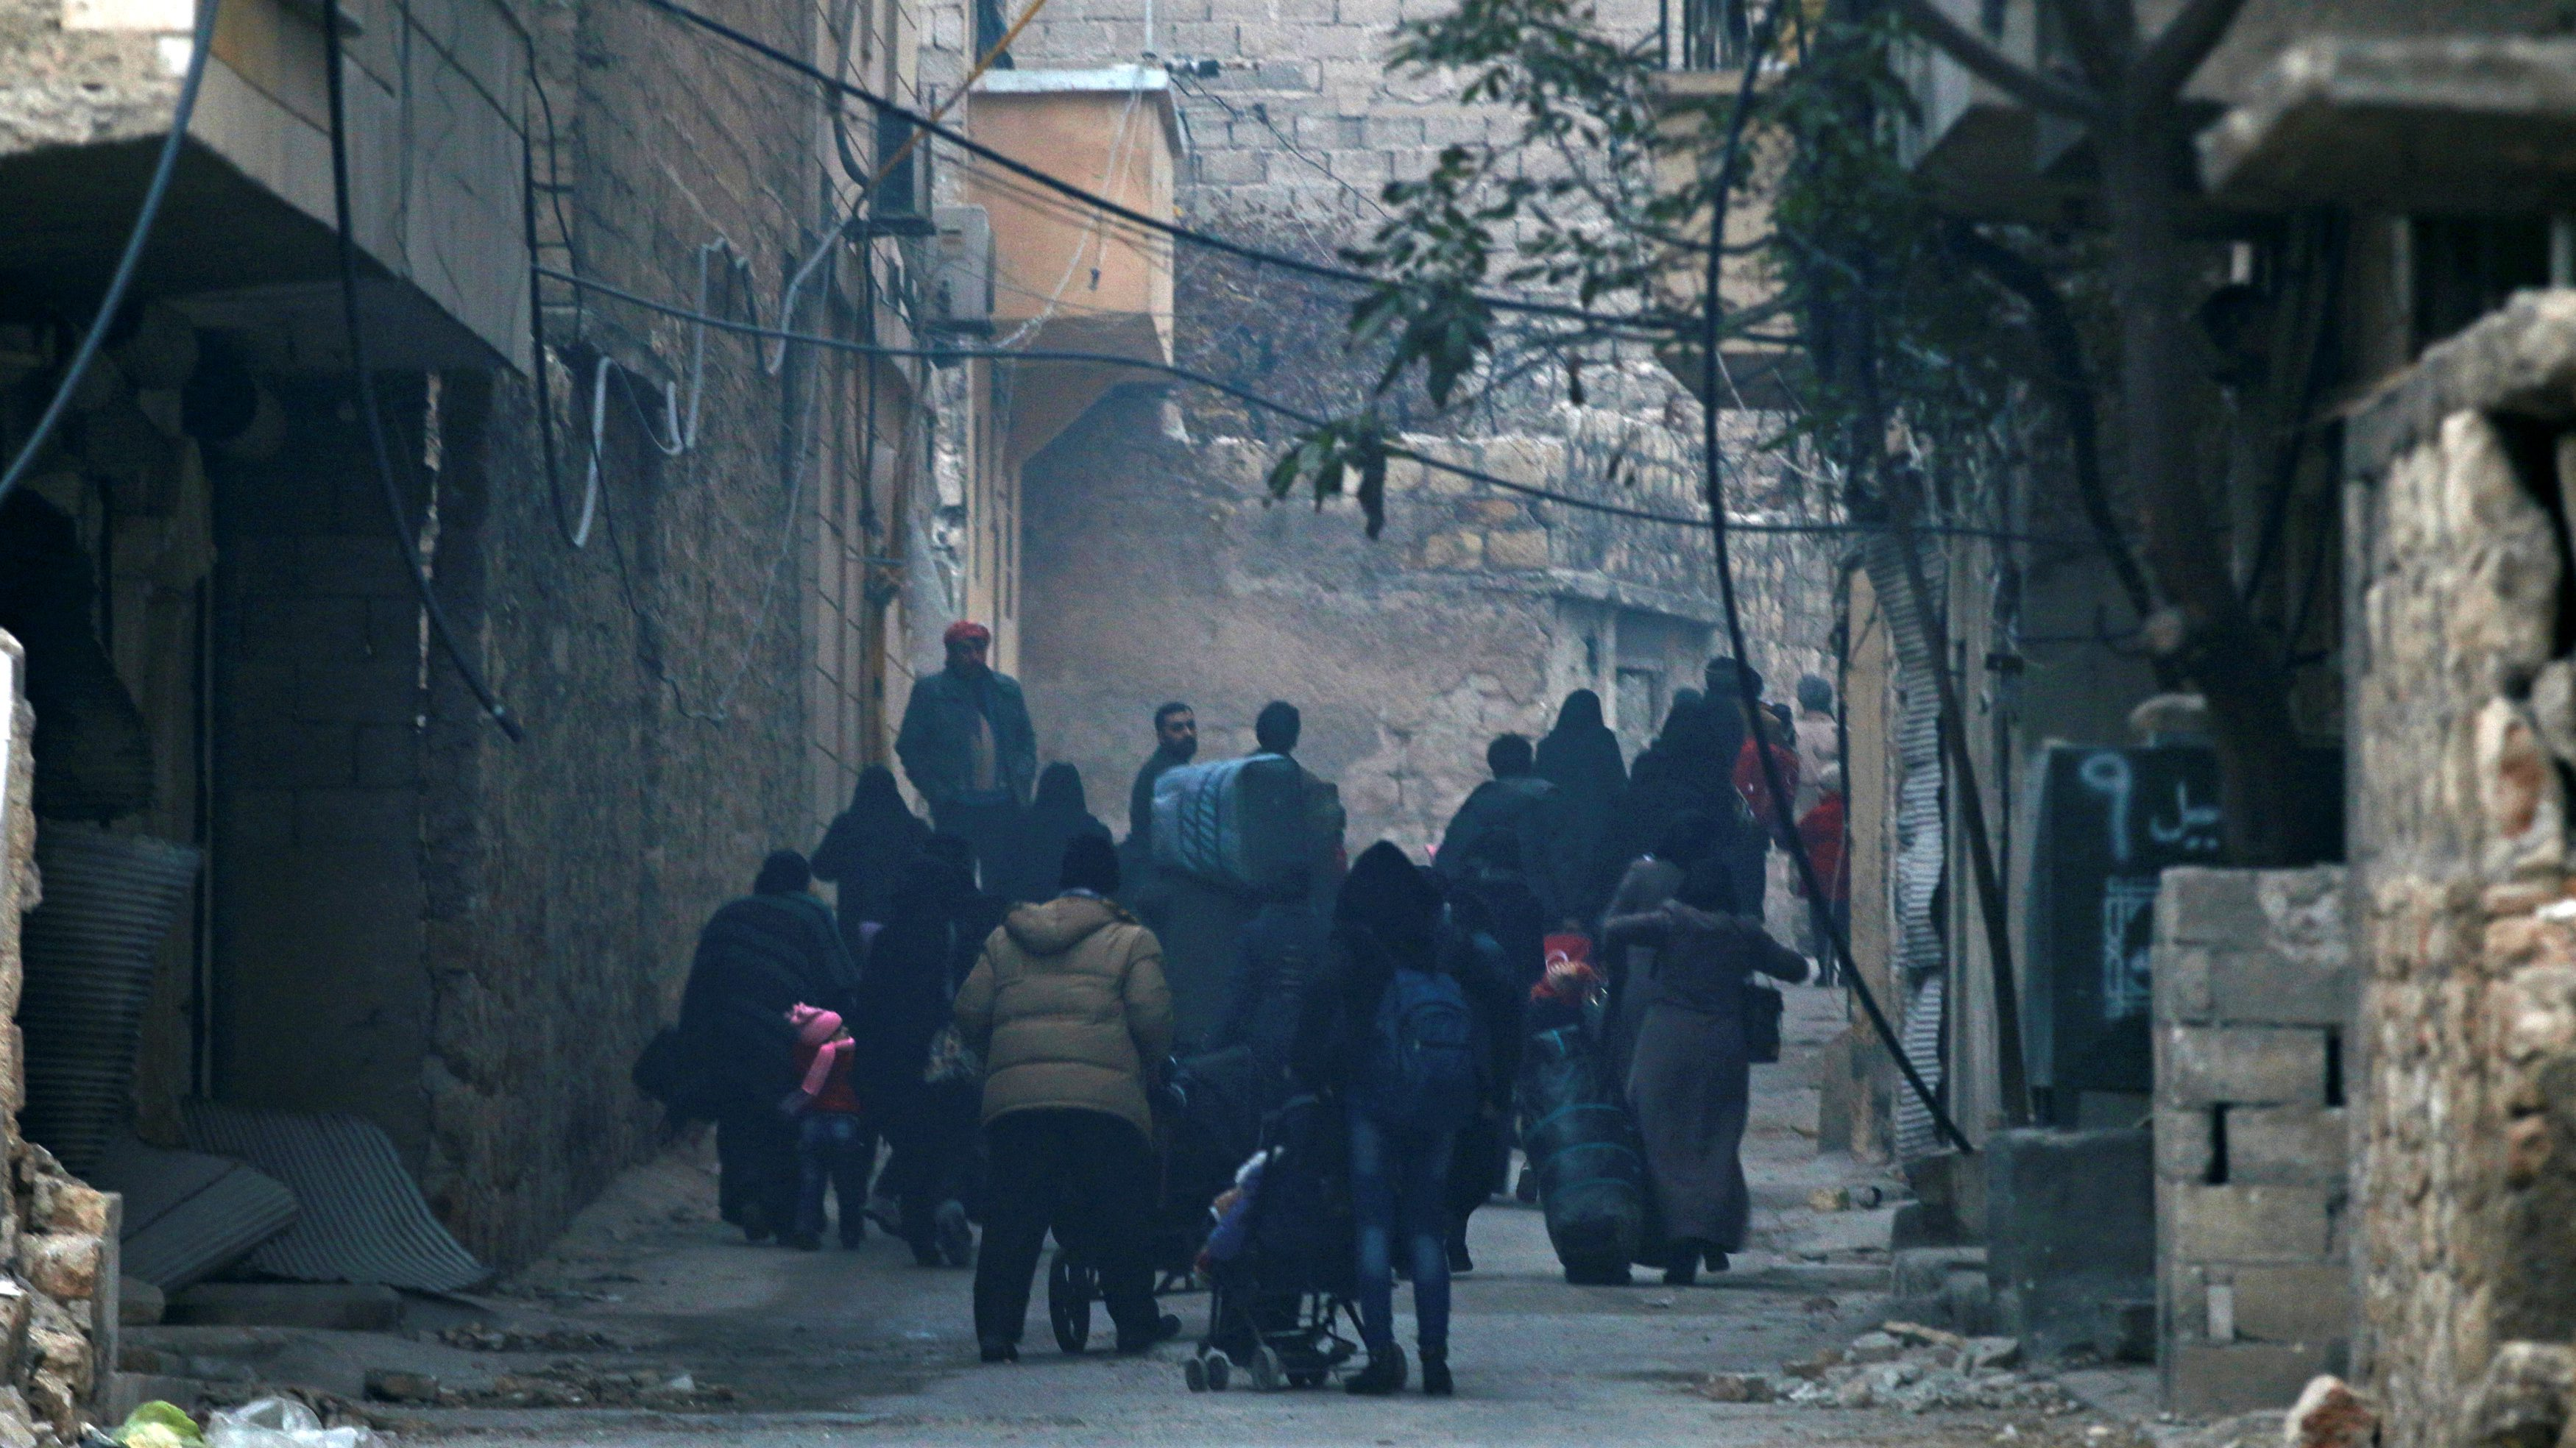 People carry belongings as they flee deeper into the remaining rebel-held areas of Aleppo